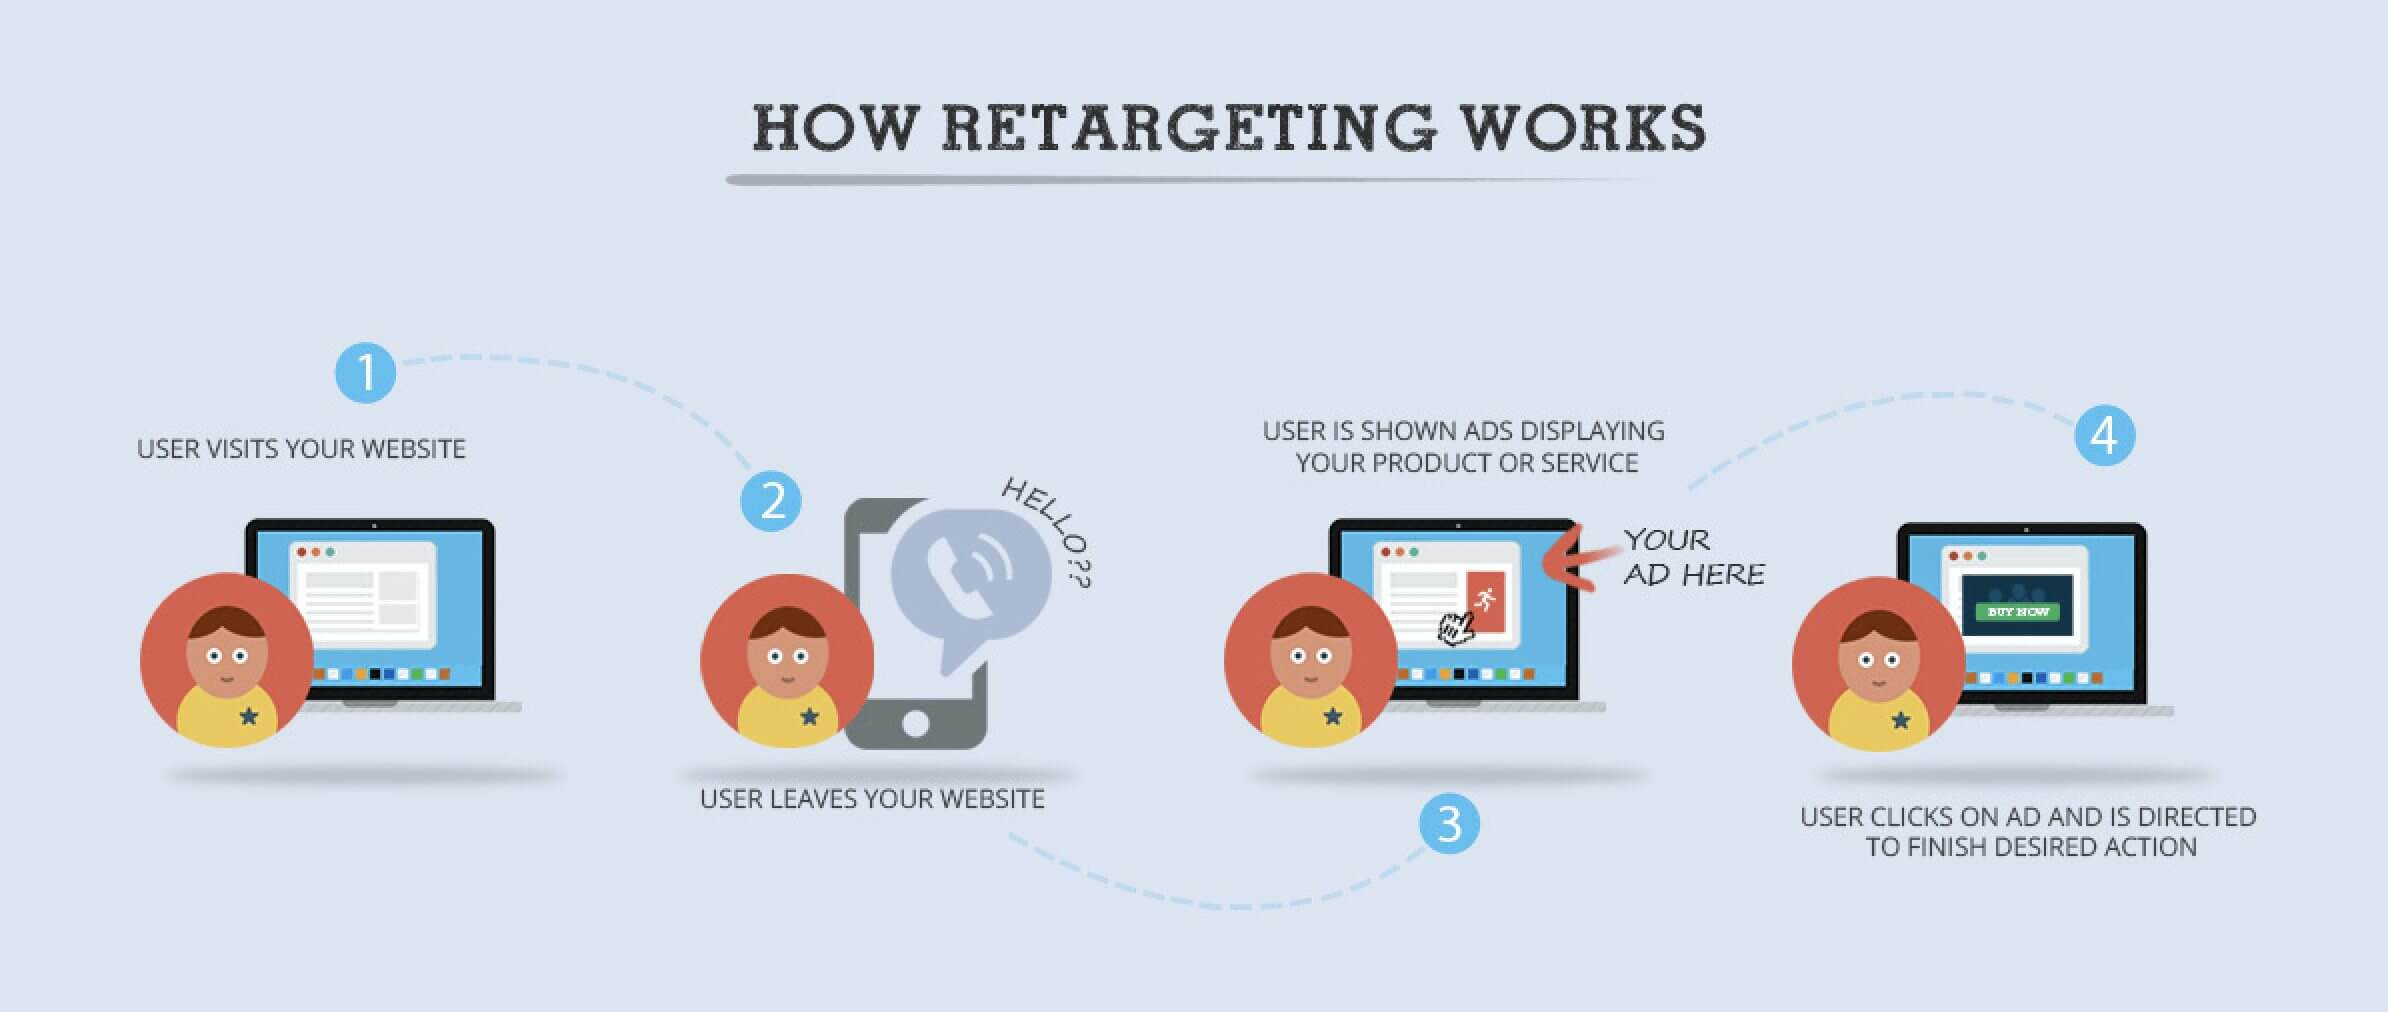 How retargeting works for building sales funnel